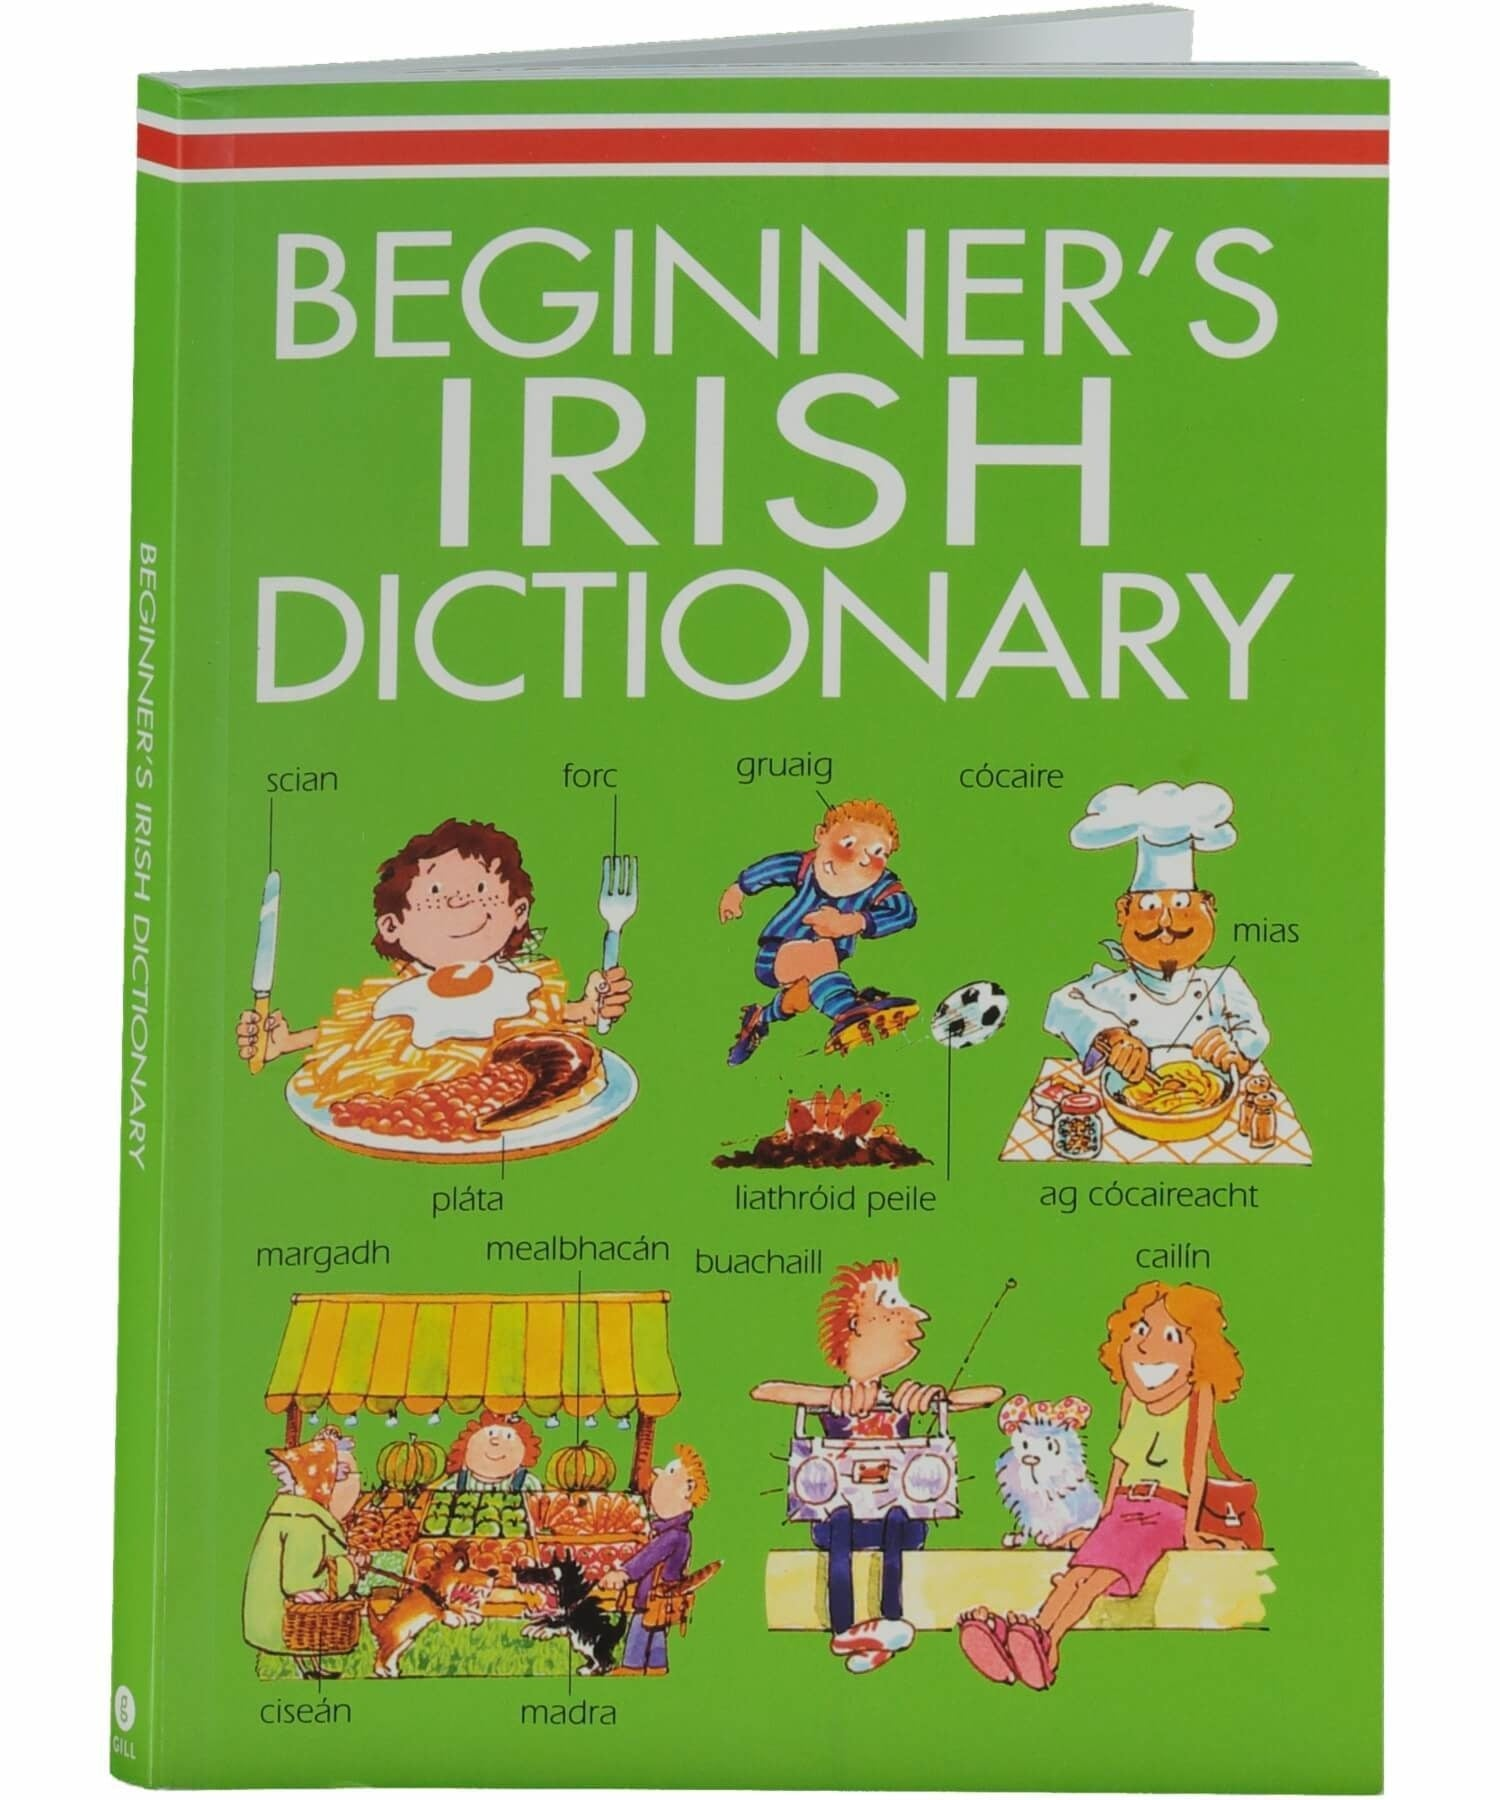 Beginner's Irish Dictionary - [Gill & MacMillan] - Books & Stationery - Irish Gifts